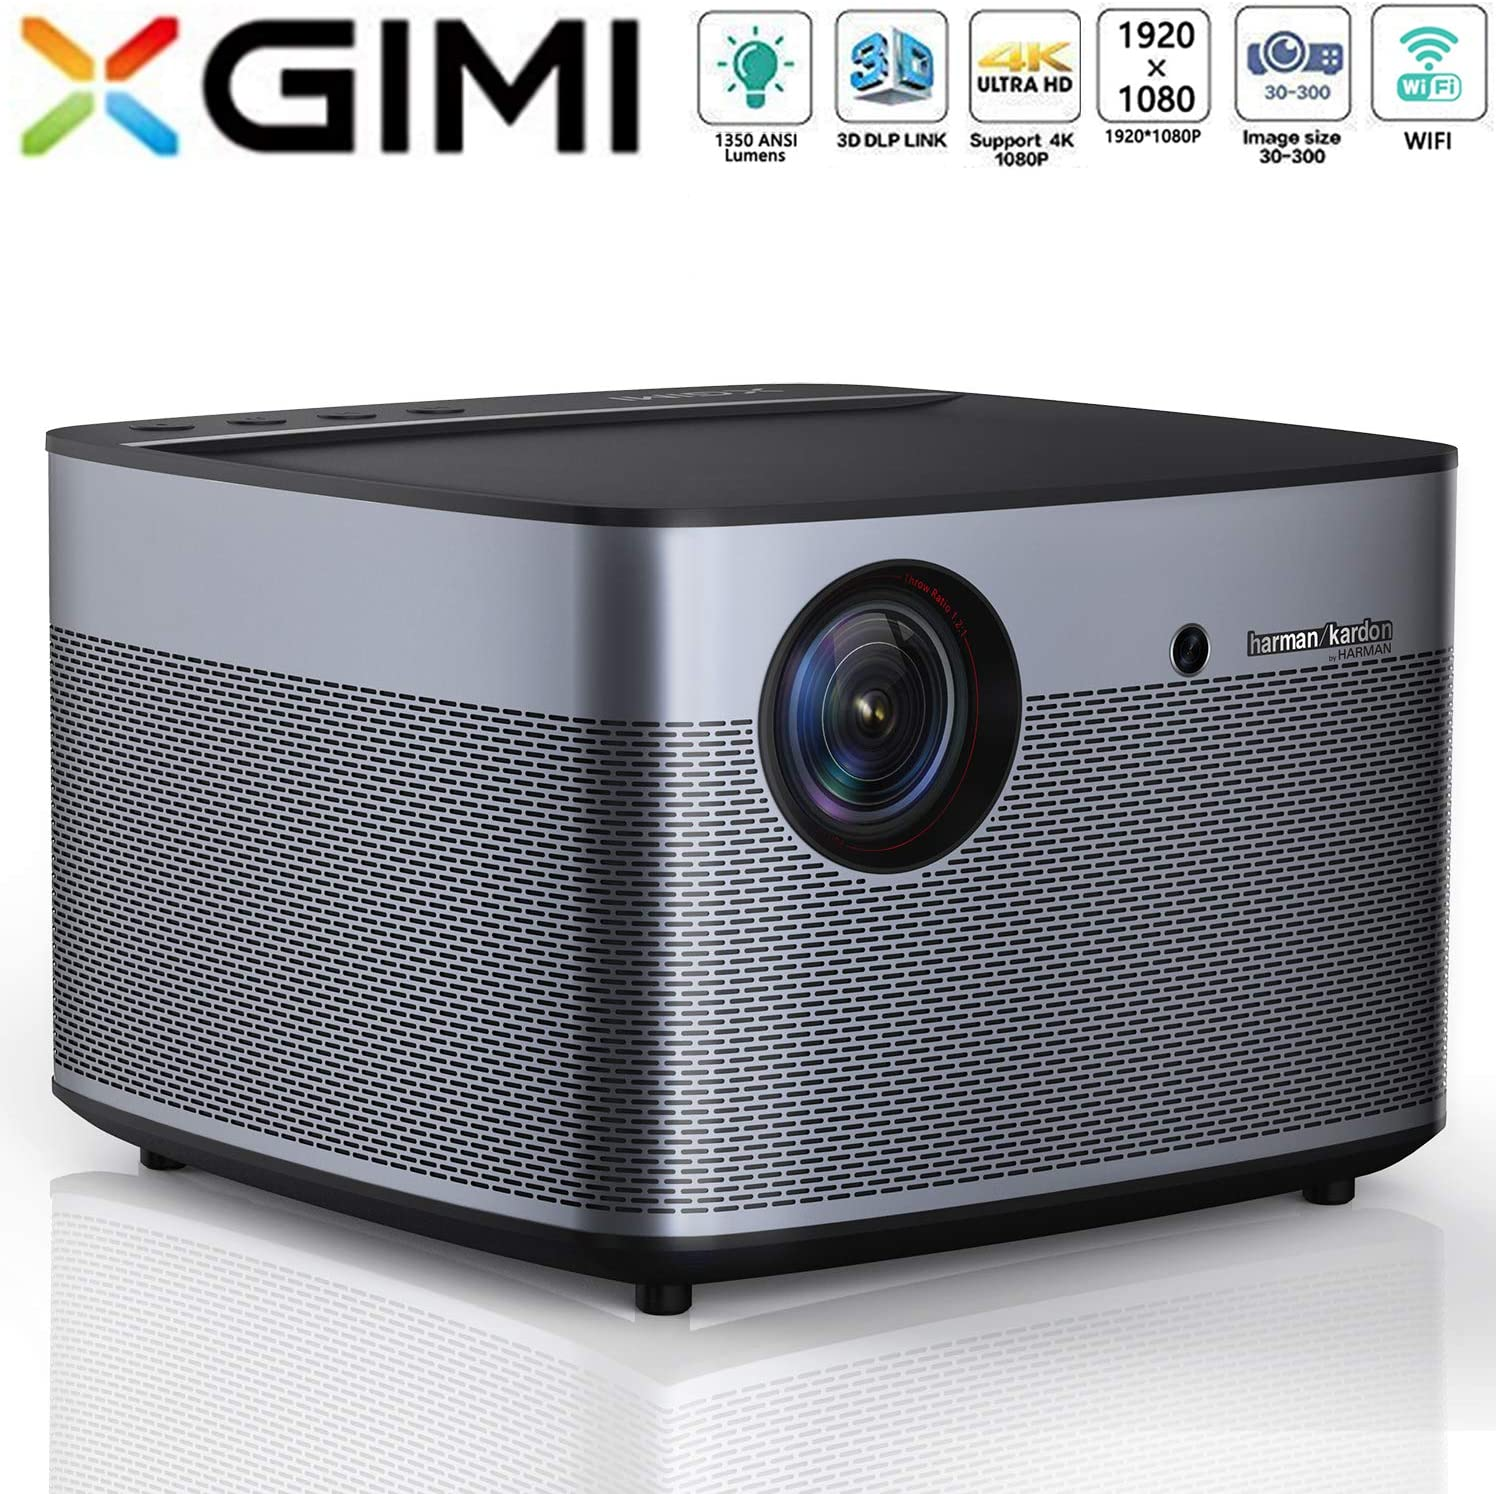 Amazon.com: XGIMI H2 LED Smart Projector 1080P HD 1350 ANSI ...